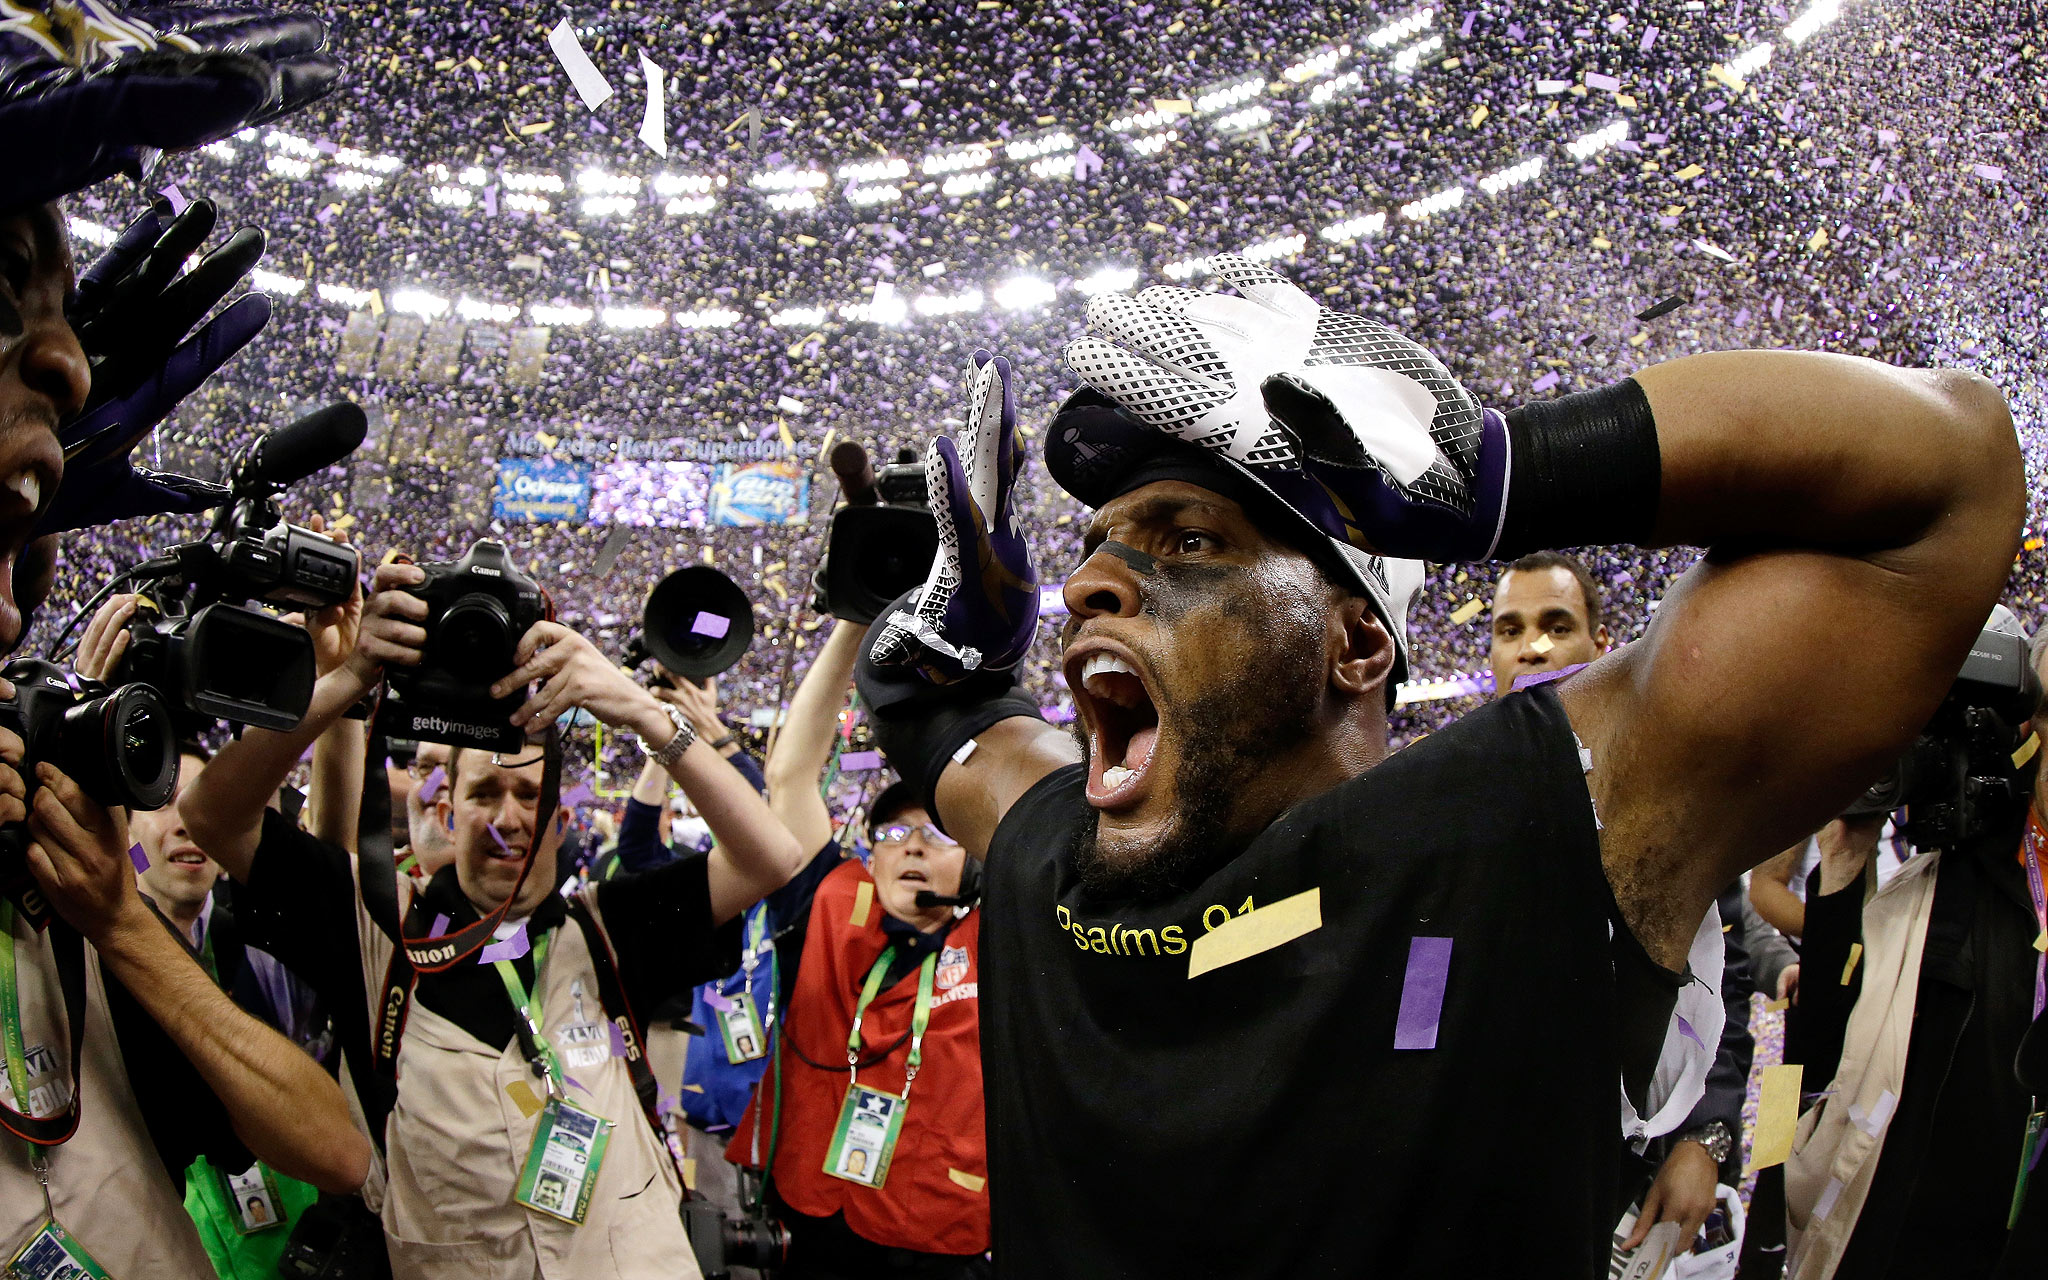 47. Ray Lewis